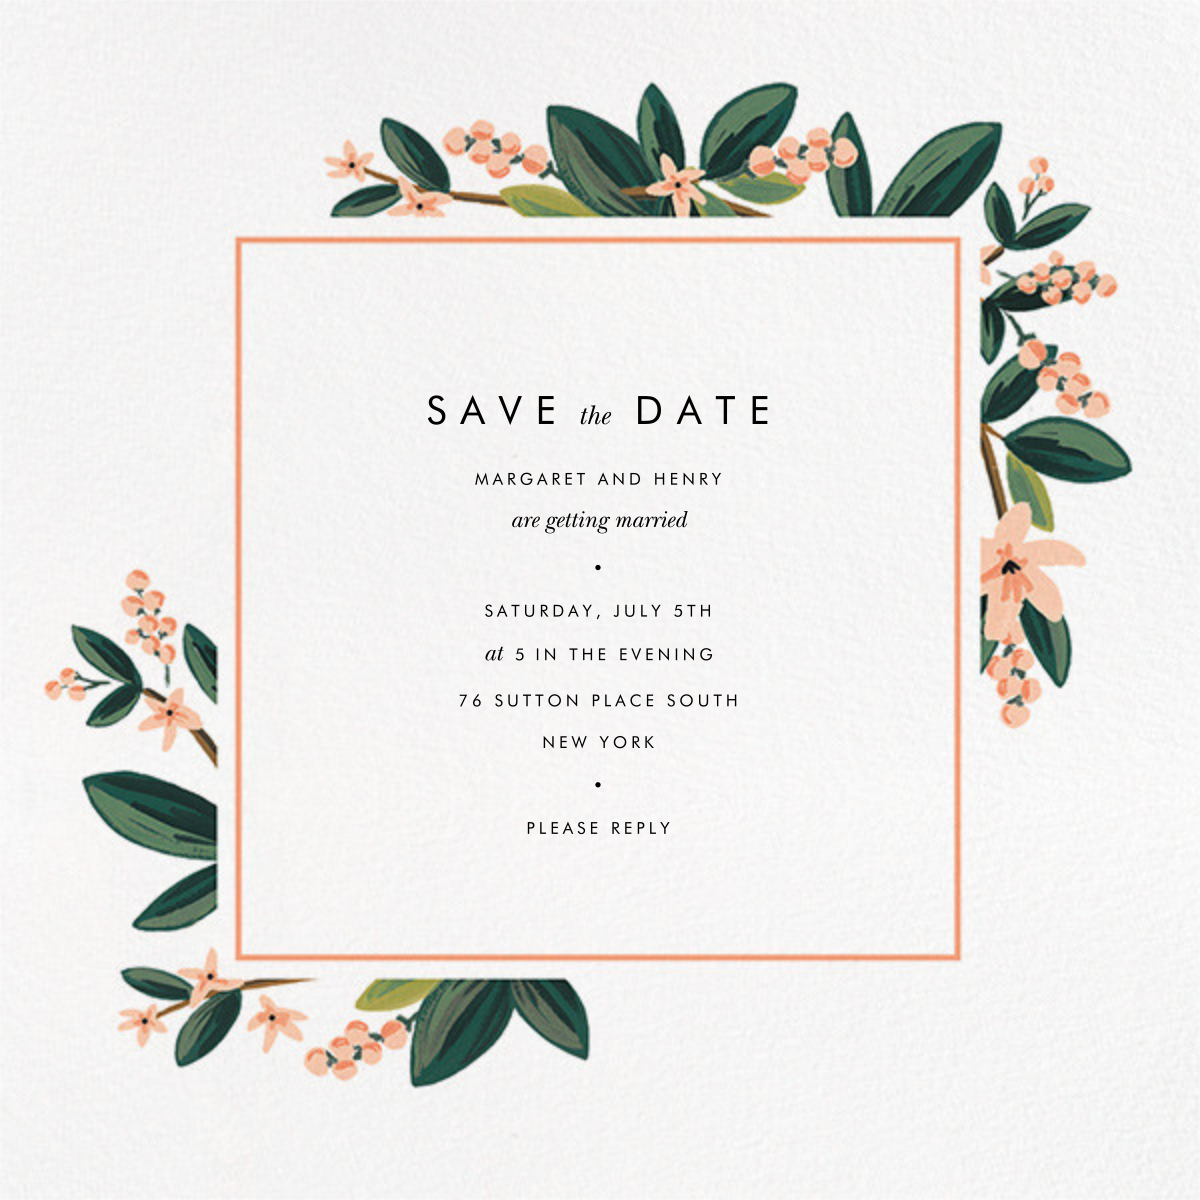 November Herbarium (Save the Date) - Rifle Paper Co. - Save the dates